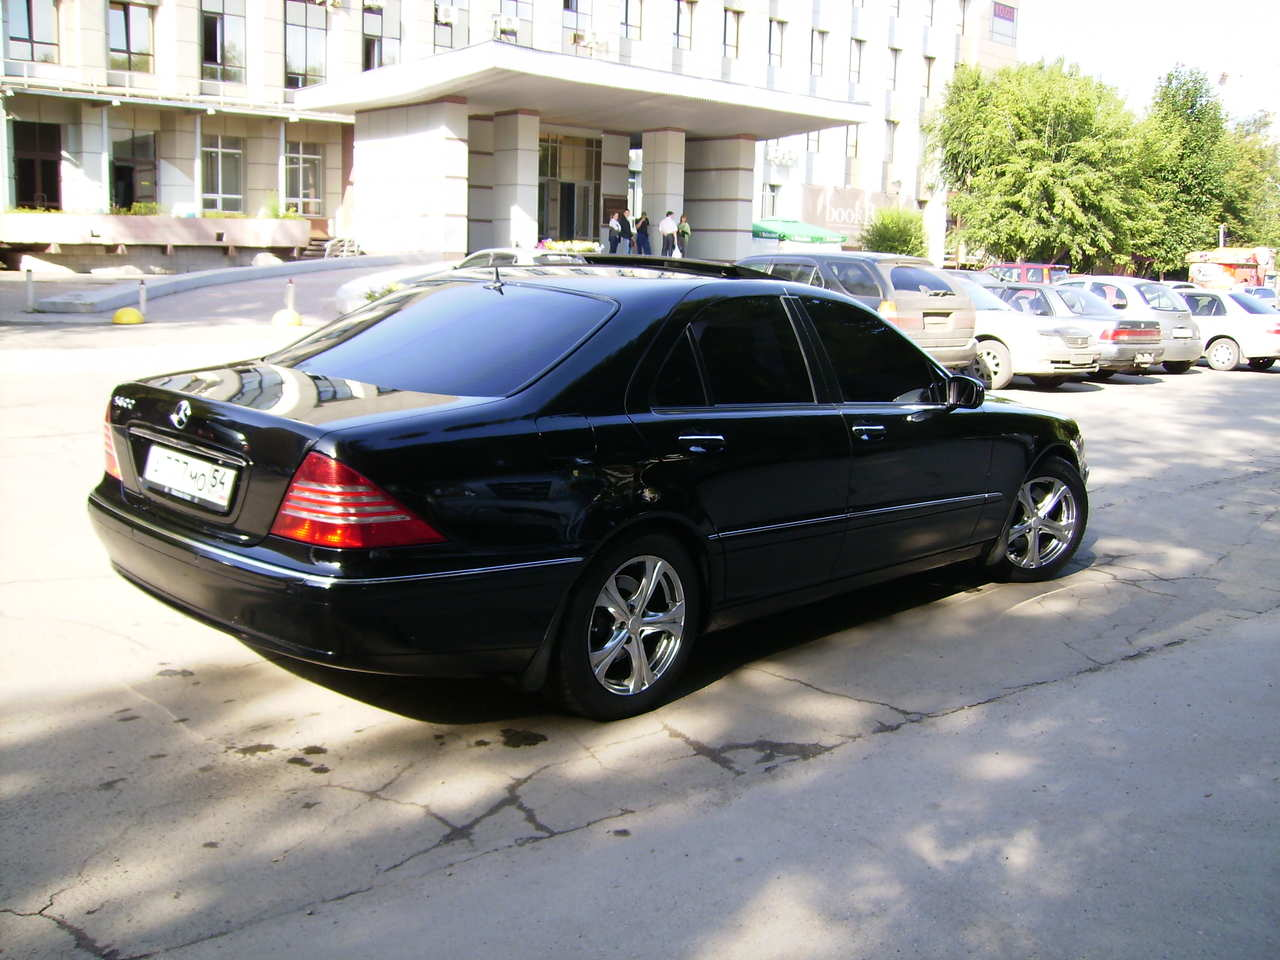 1999 mercedes benz s class pictures 5000cc gasoline fr or rr automatic for sale. Black Bedroom Furniture Sets. Home Design Ideas